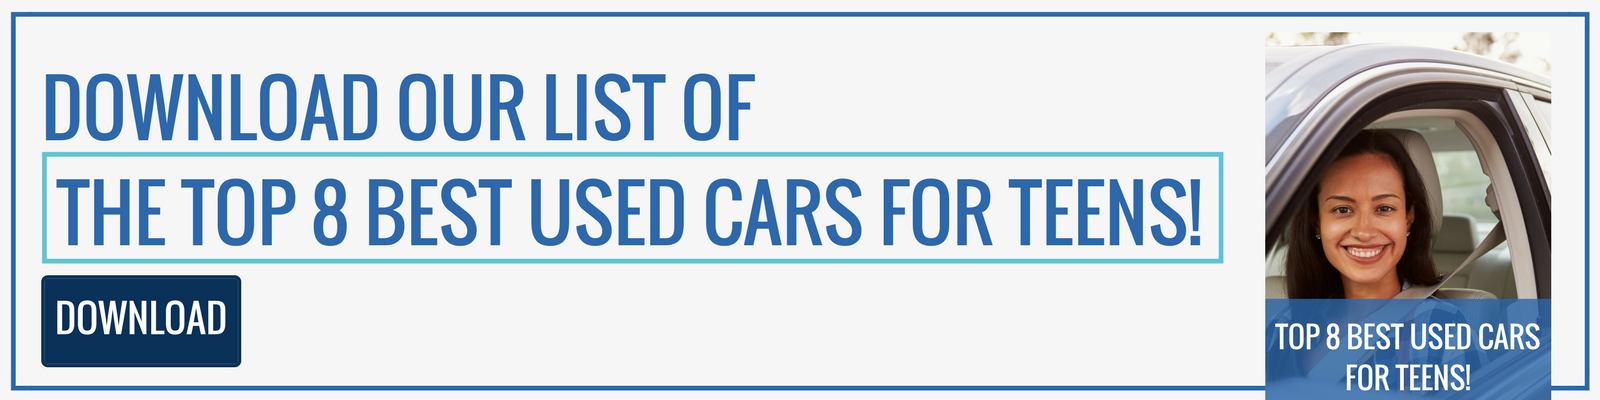 Top 8 Best Used Cars For Teens